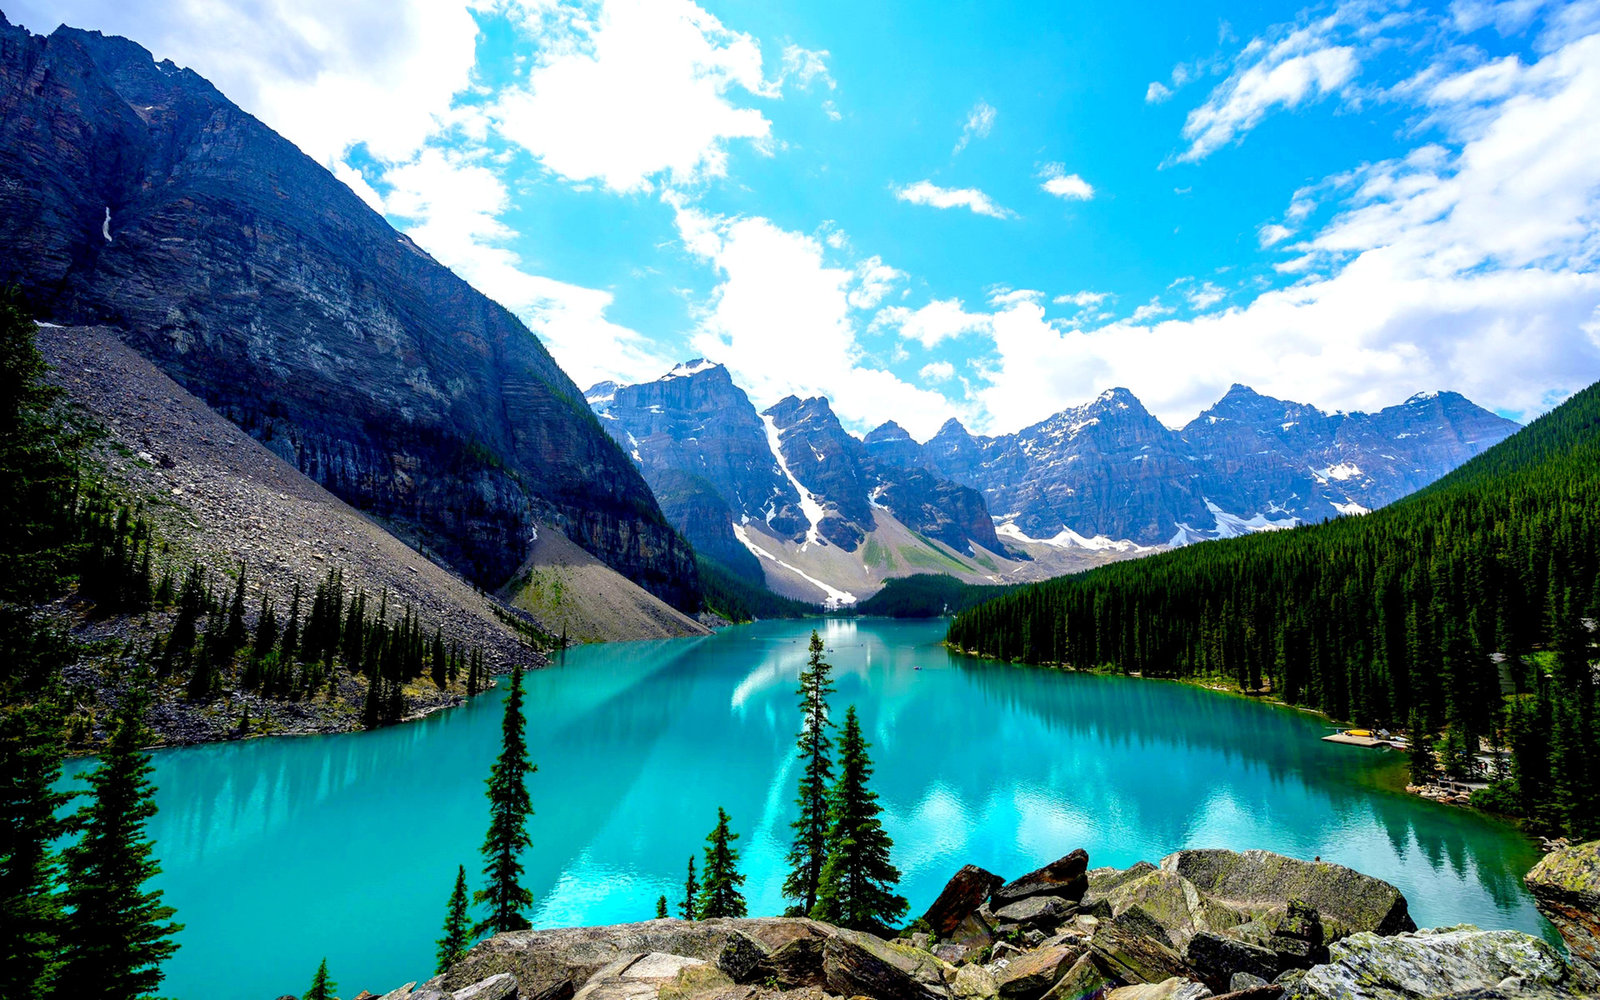 Canada, Alberta, Banff National Park